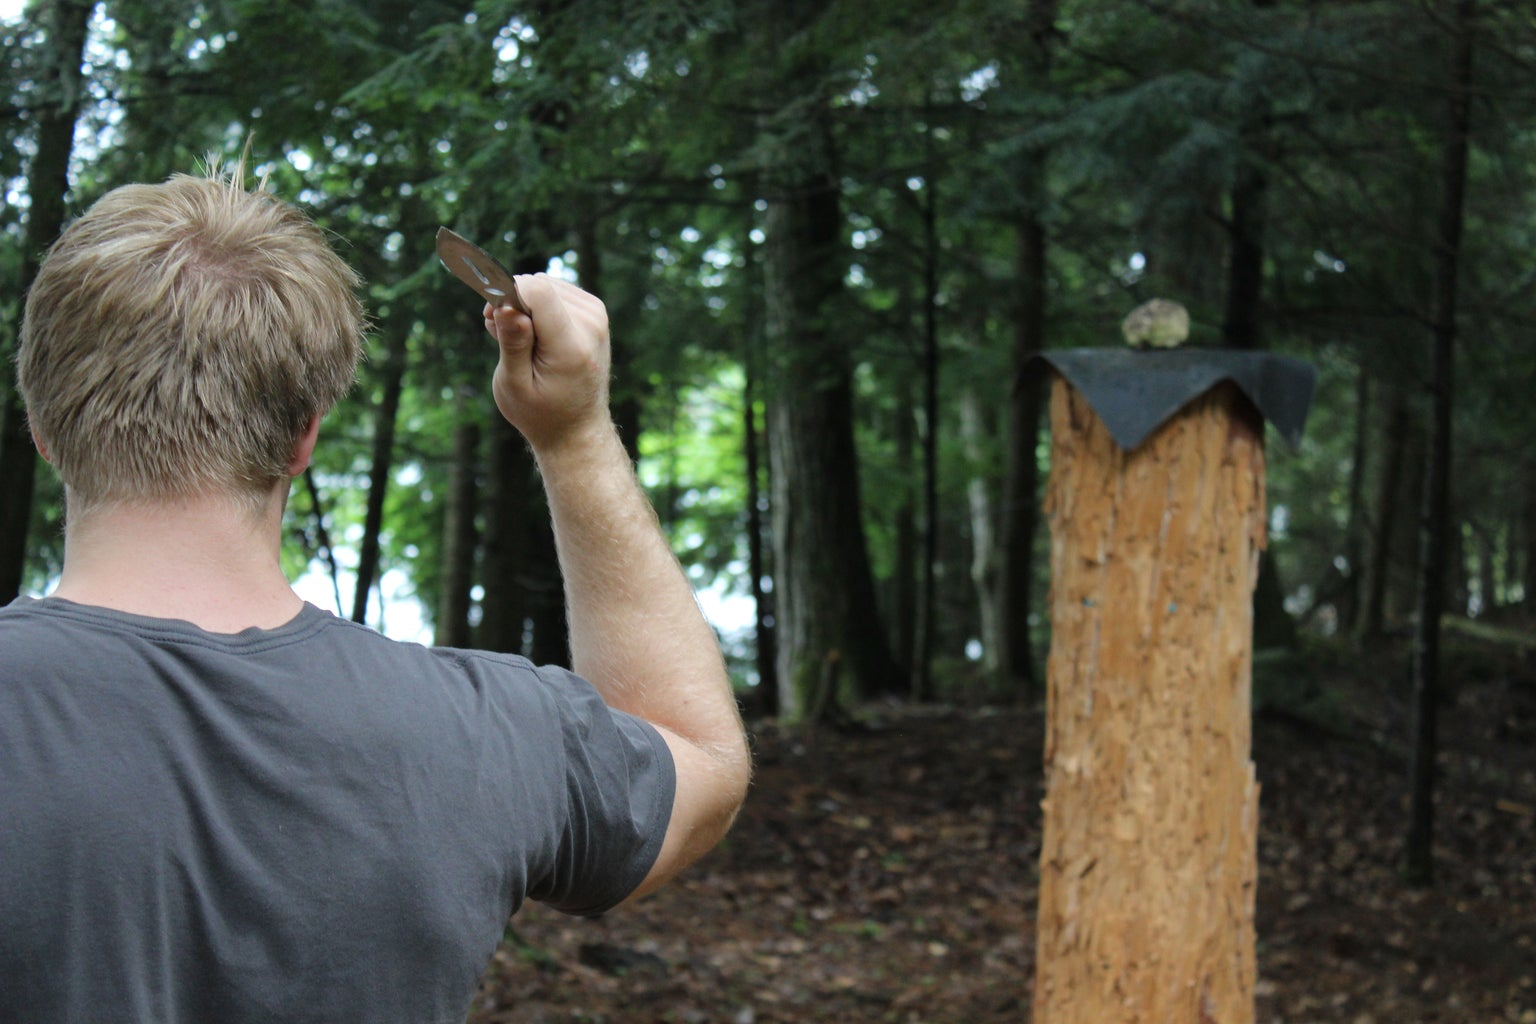 Throwing Stance and Knife Grip